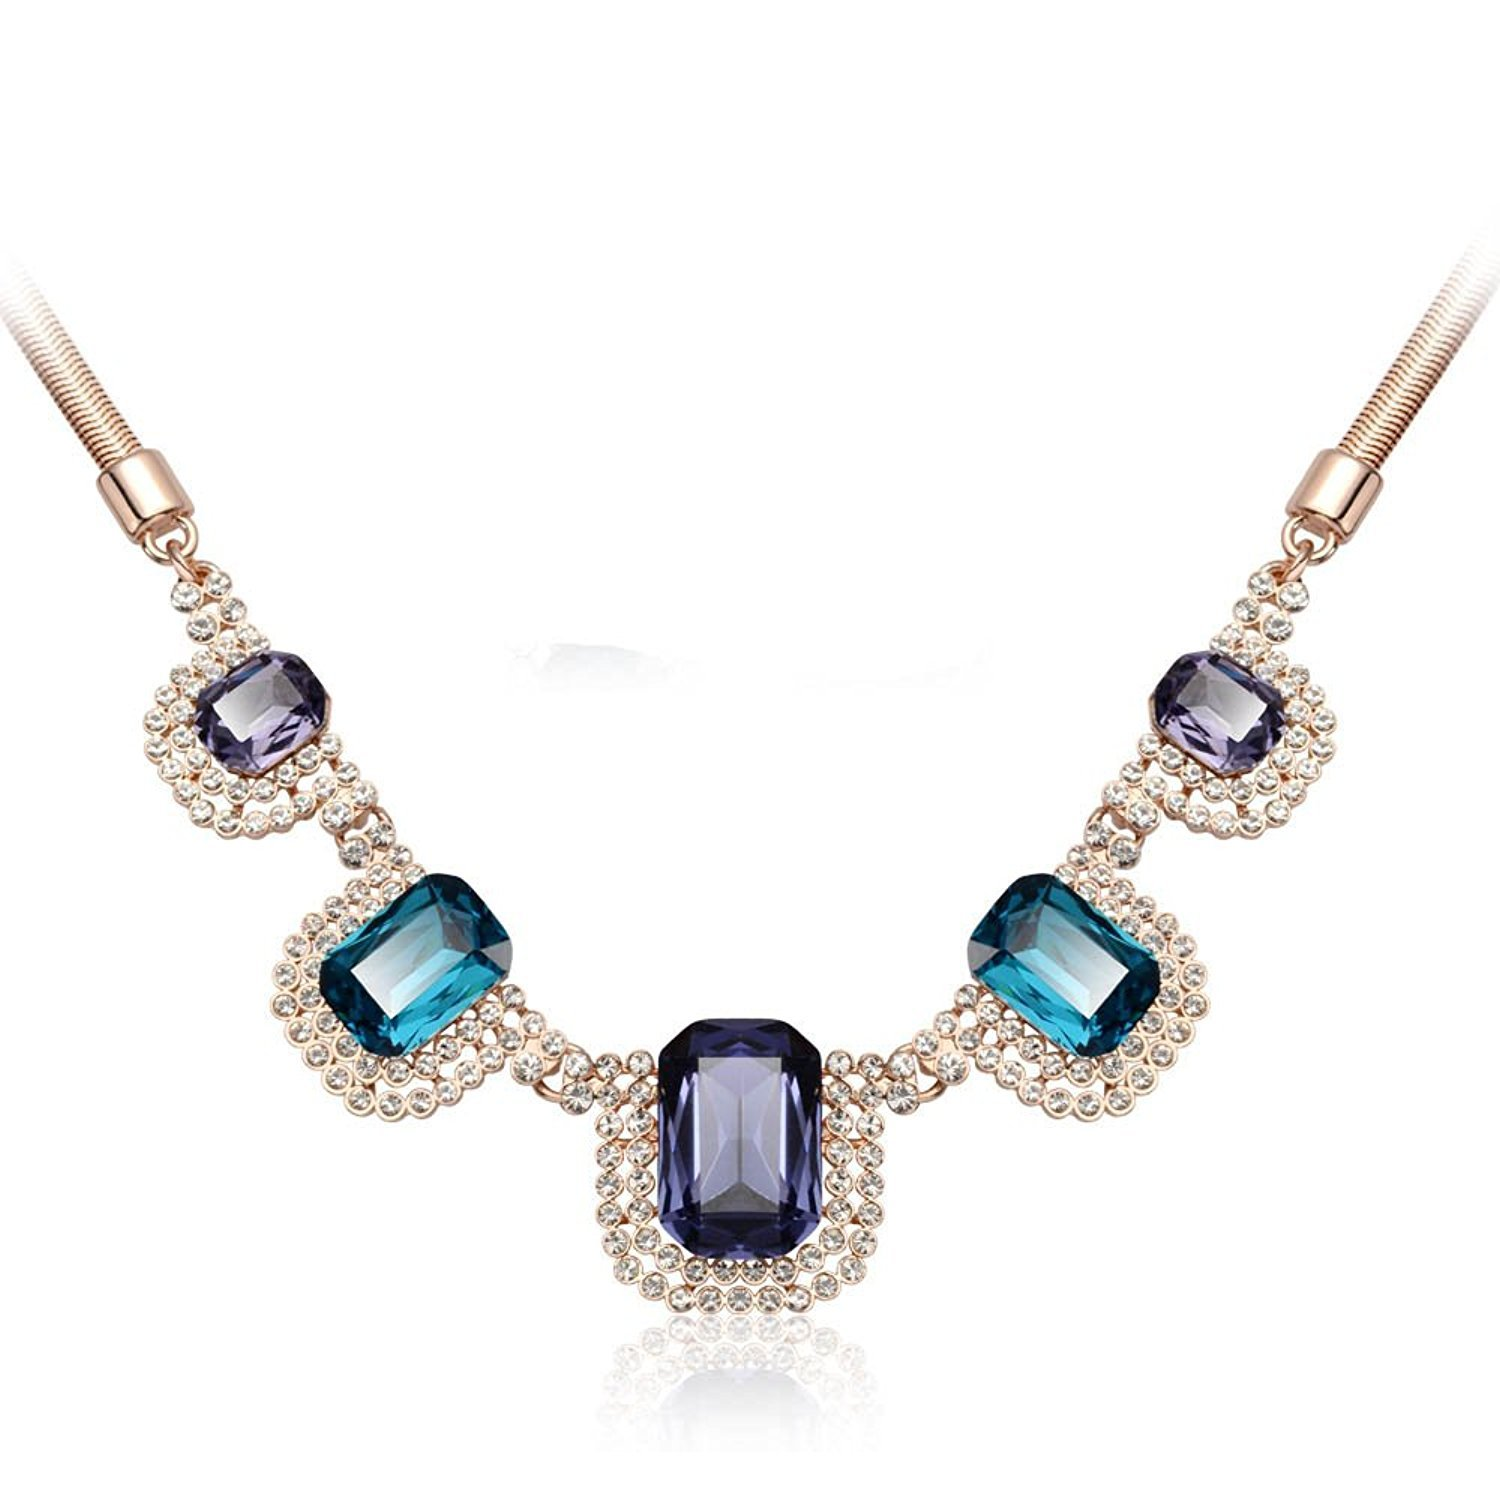 IUHA Gorgeous Made with Large Cubic Zirconia Eye-catching Necklace Party Prevent allergies For Women Gifts